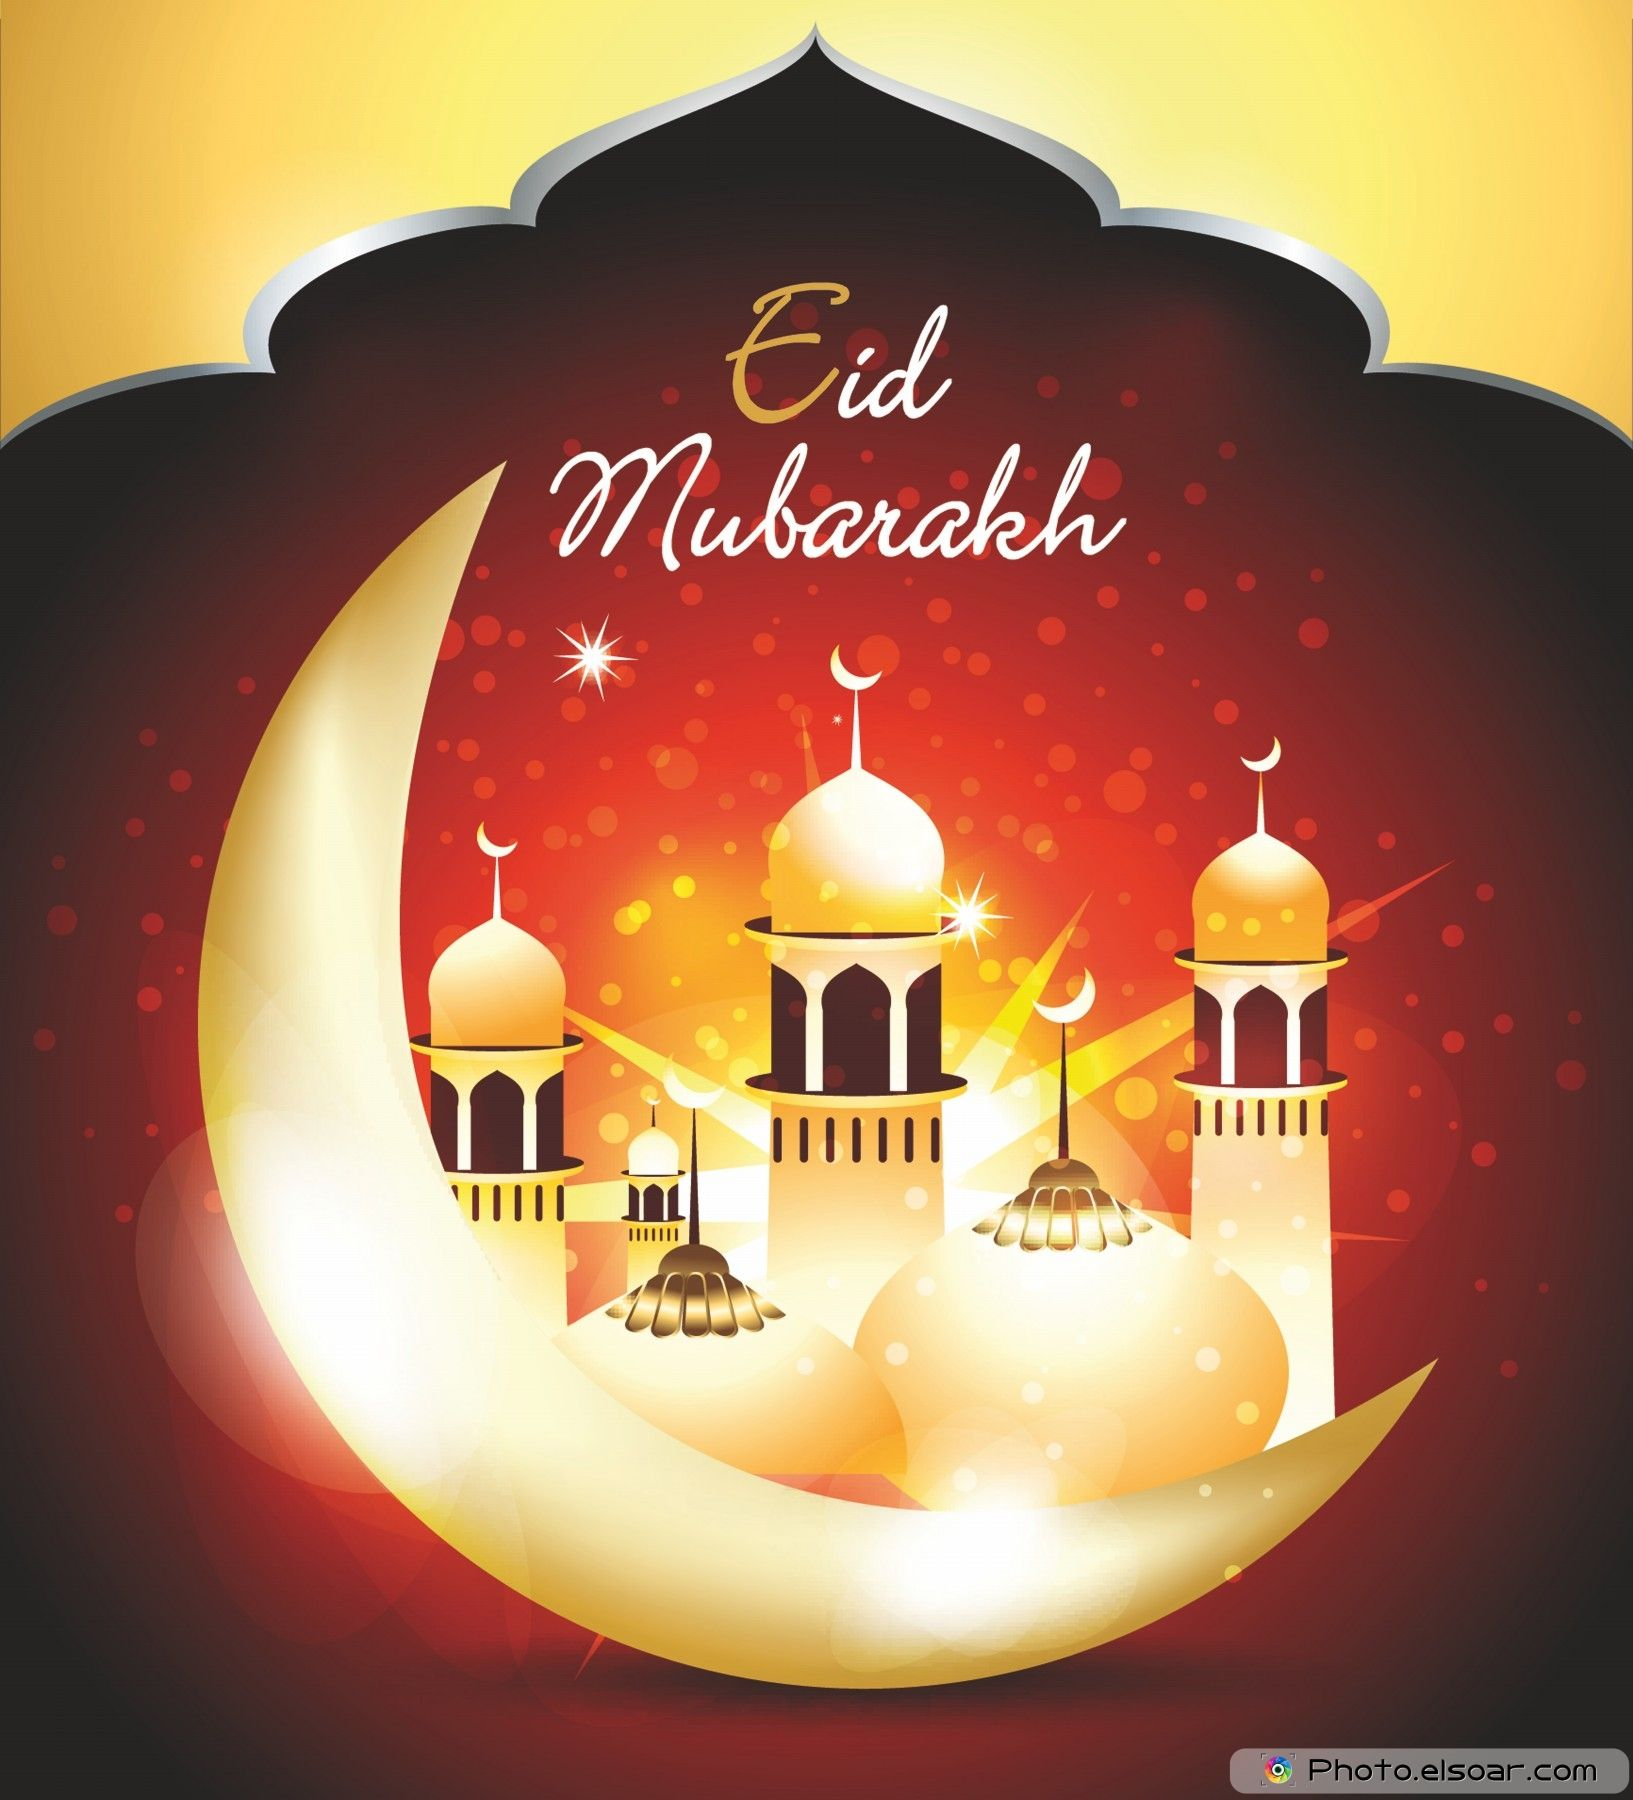 Eid Mubarak Wallpaper New With Images Eid Mubarak Wallpaper